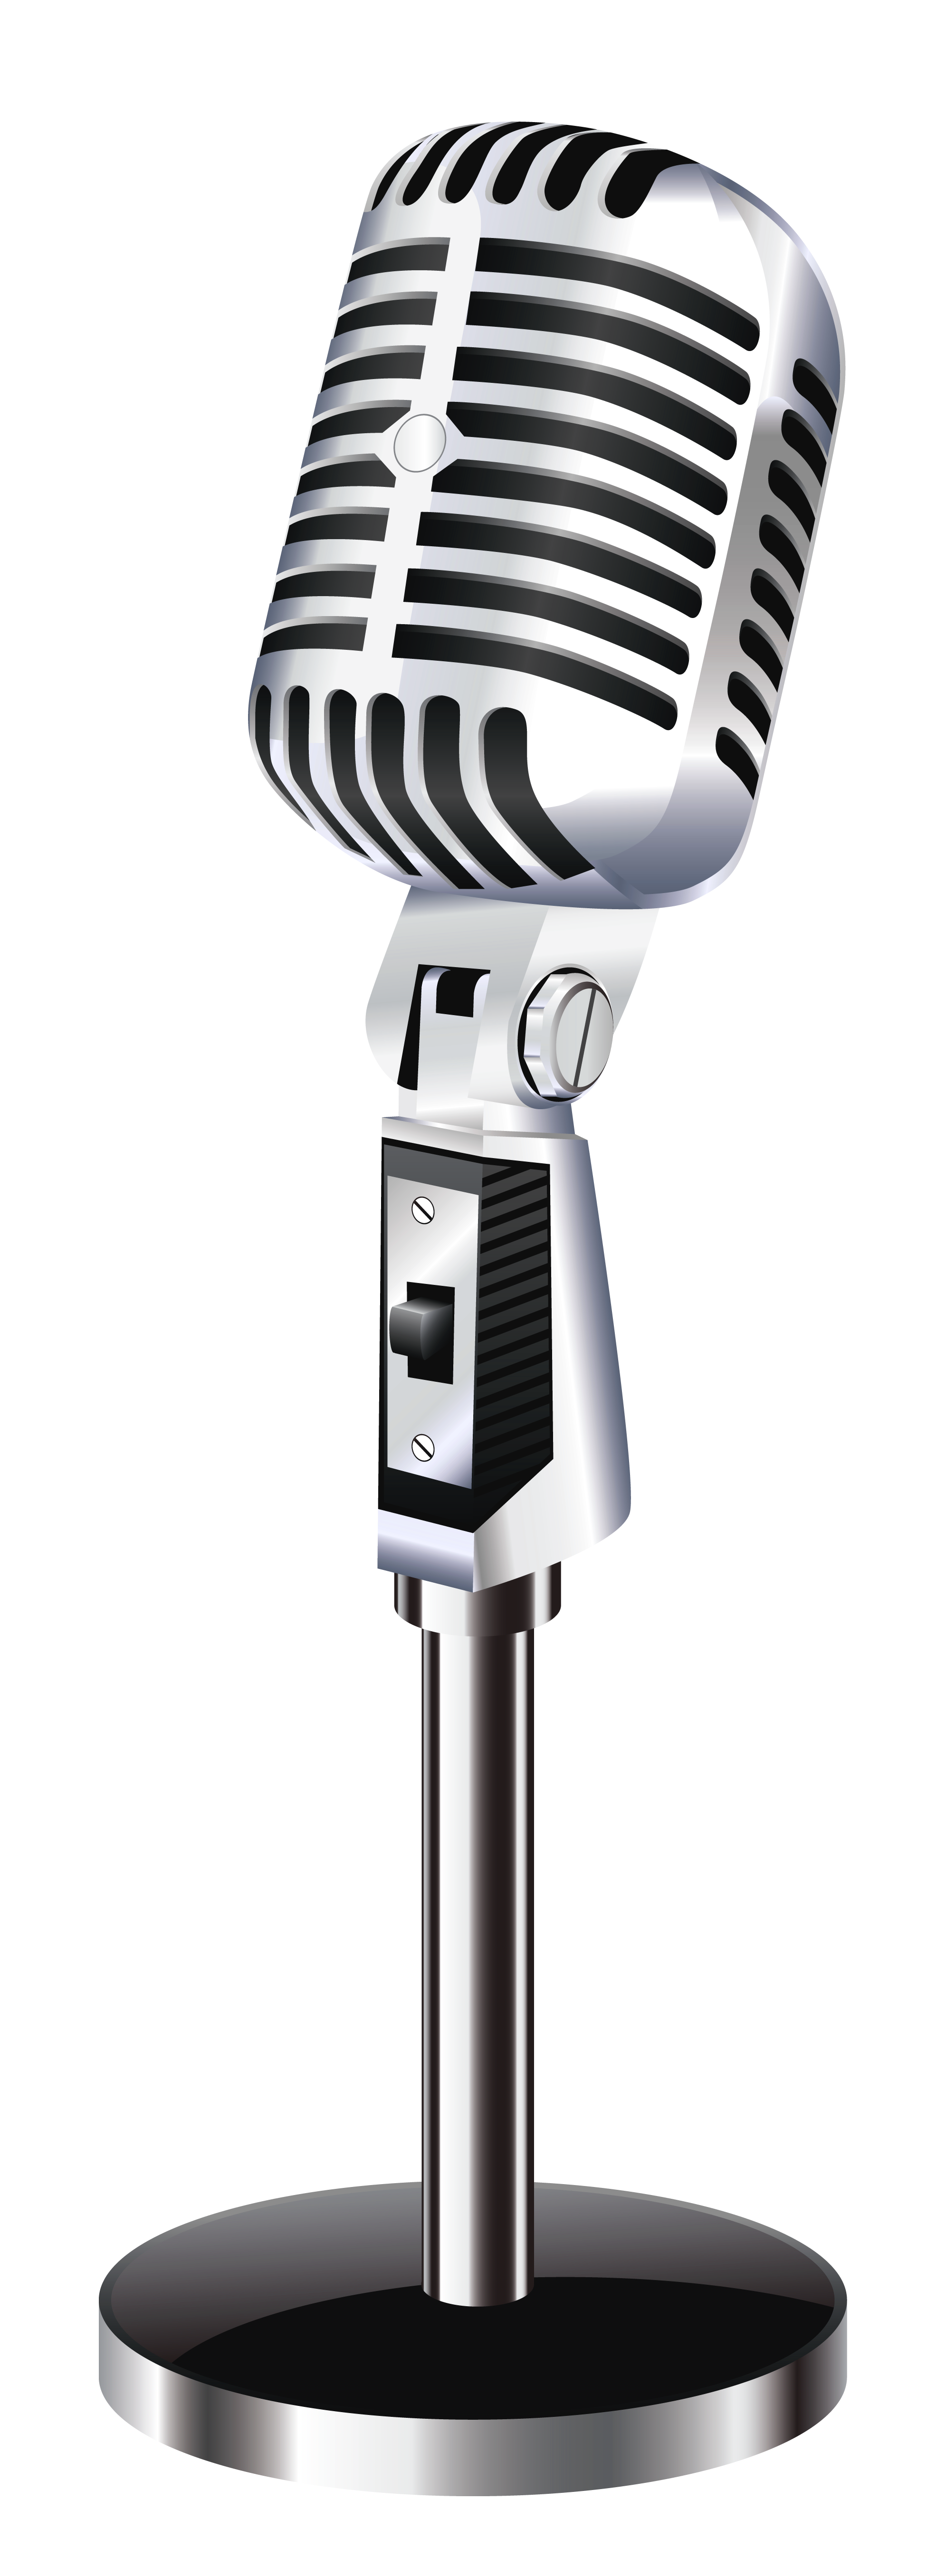 Microphone Png image #19972